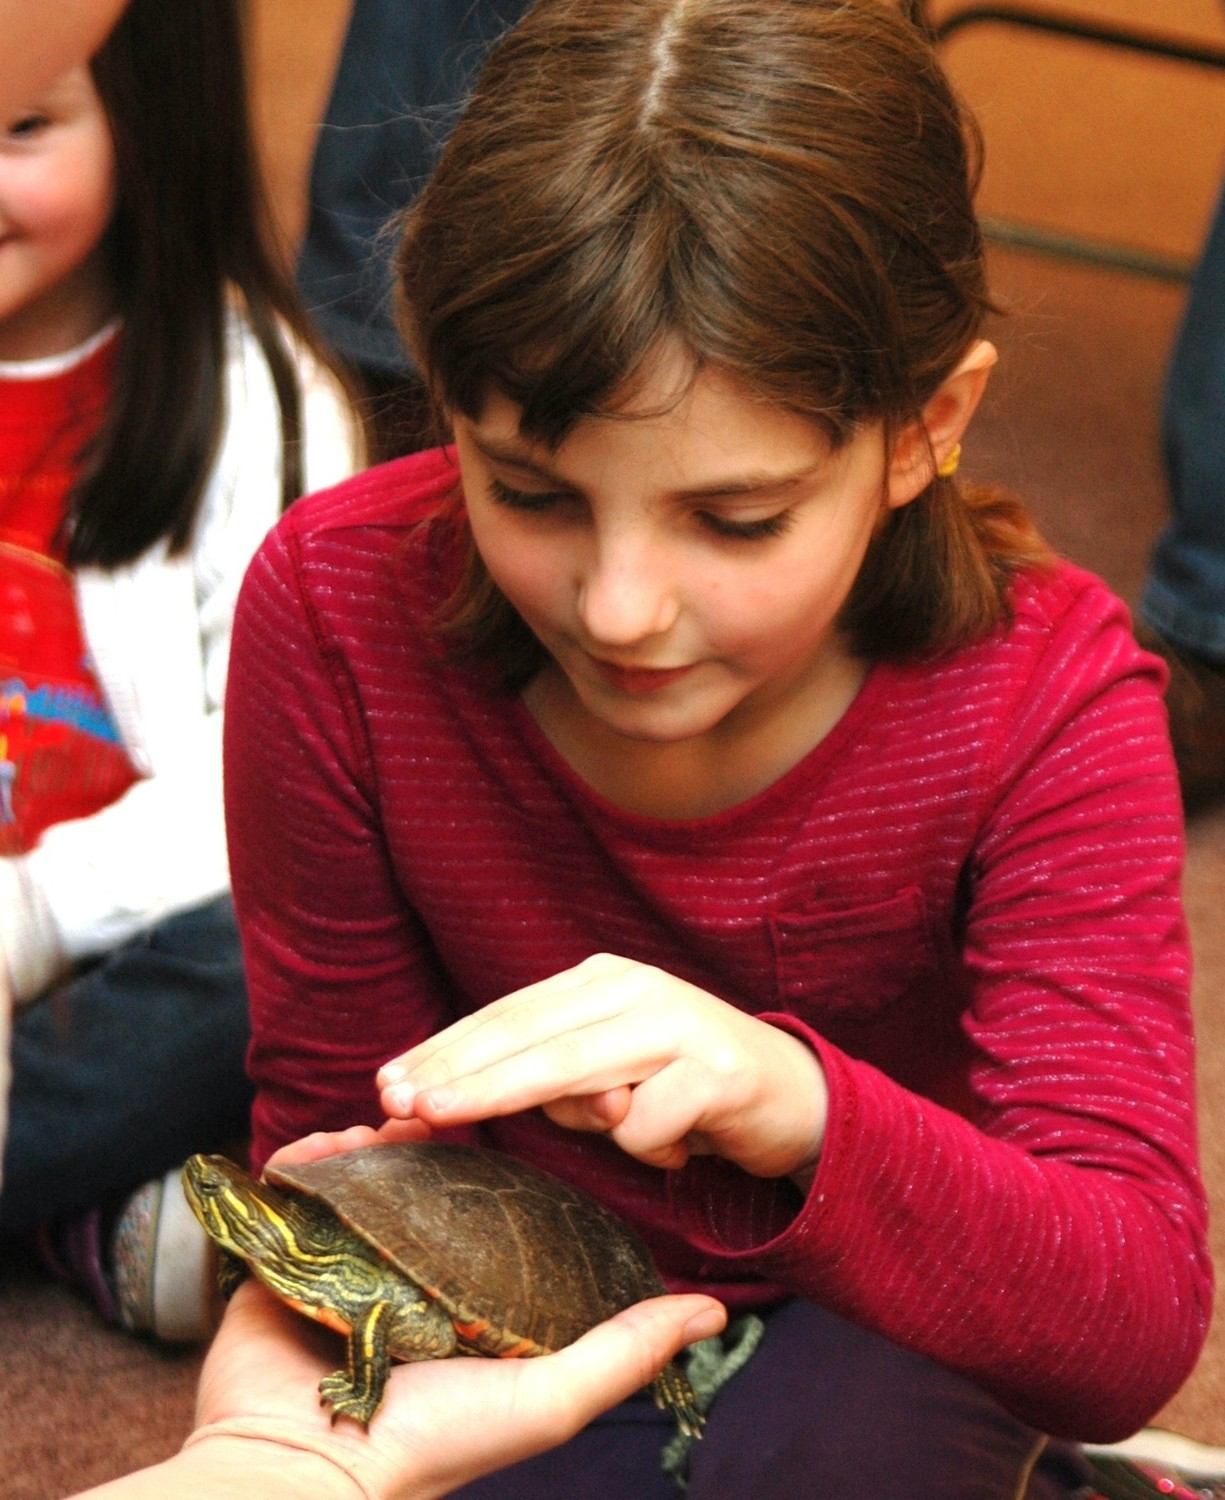 Bring the kids to meet some cool critters at Audubon during school vacation week!